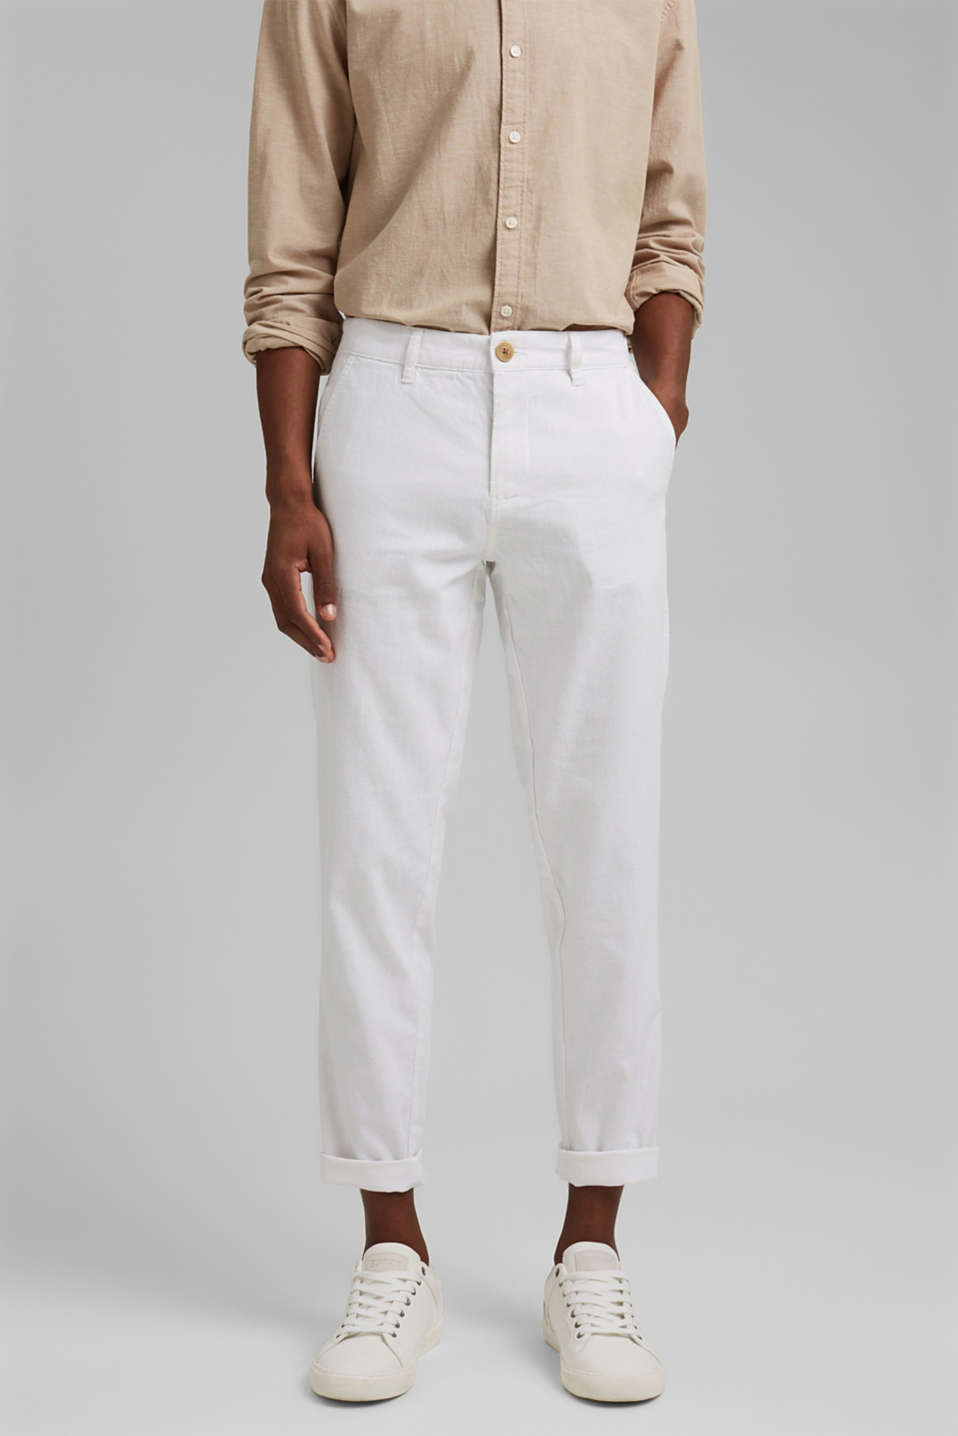 Esprit - Airy chinos made of blended linen